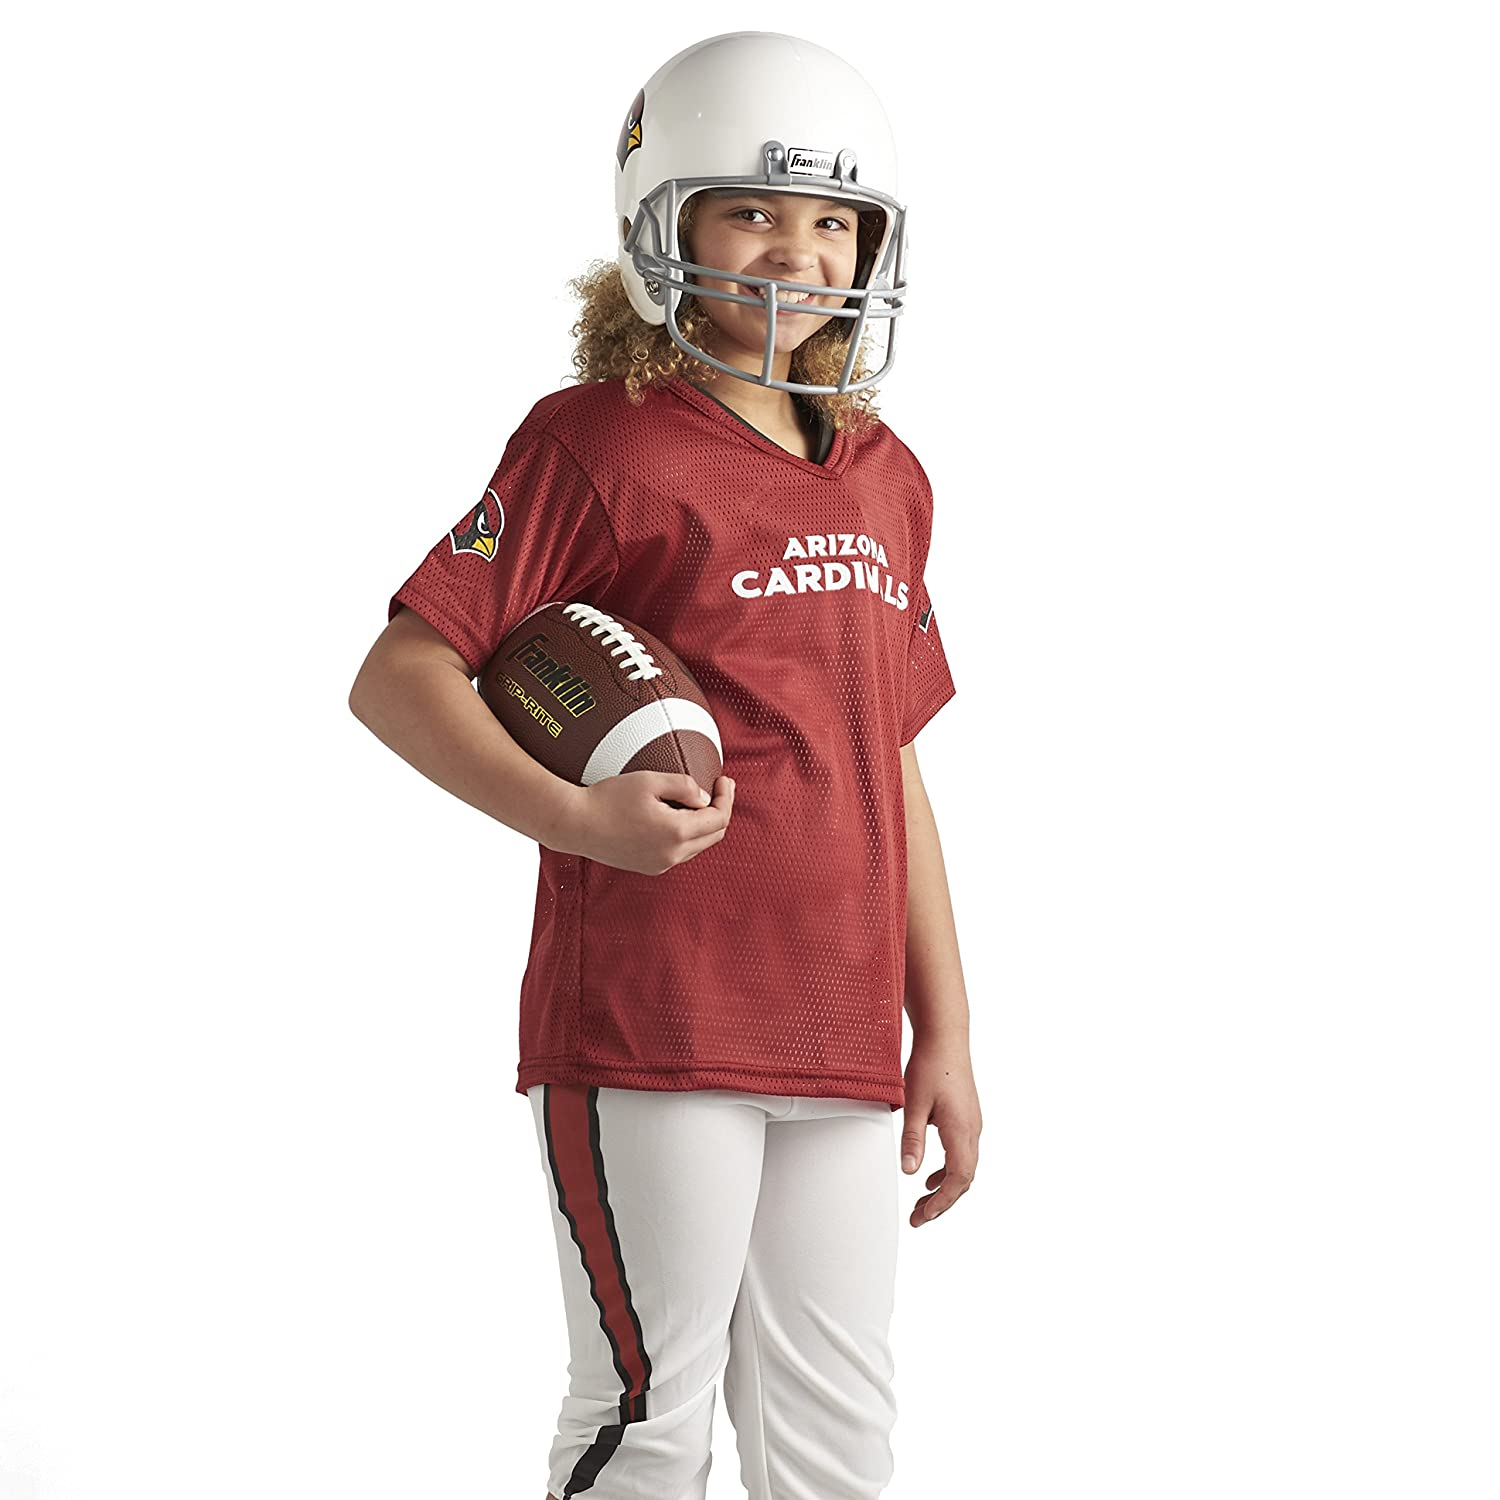 f747299ac05 Amazon.com : Franklin Sports Deluxe NFL-Style Youth Uniform - NFL Kids  Helmet, Jersey, Pants, Chinstrap and Iron on Numbers Included - Football  Costume for ...